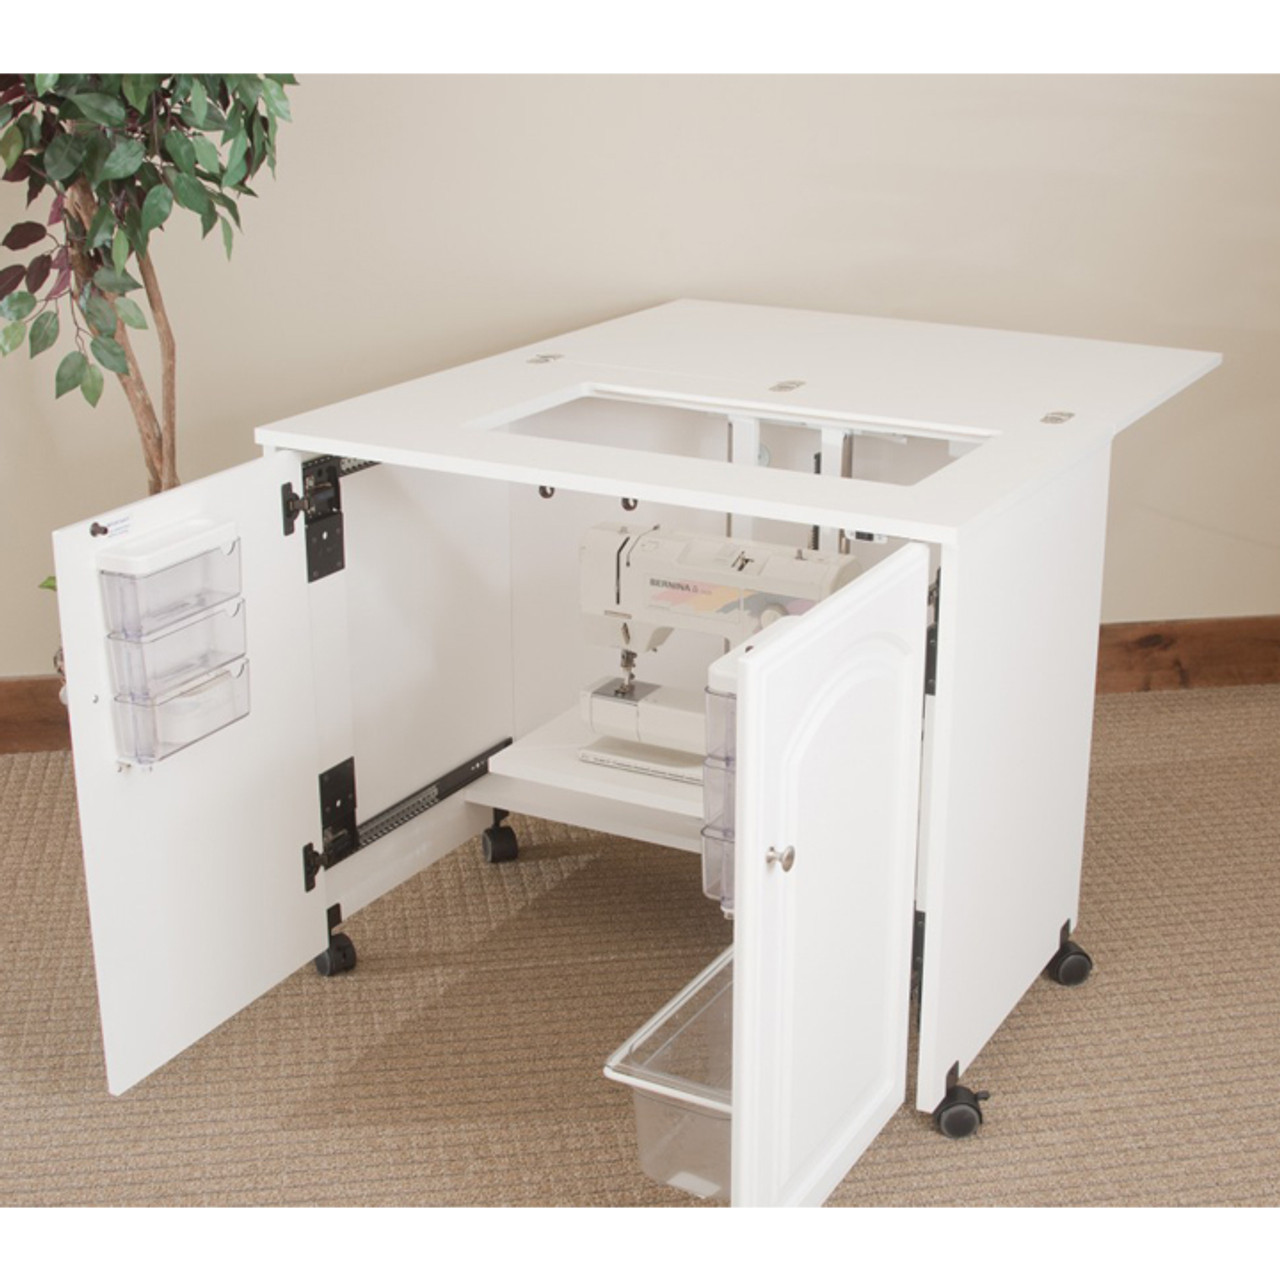 ... Fashion Sewing Cabinets 7500 Space Saver Sewing Cabinet ...